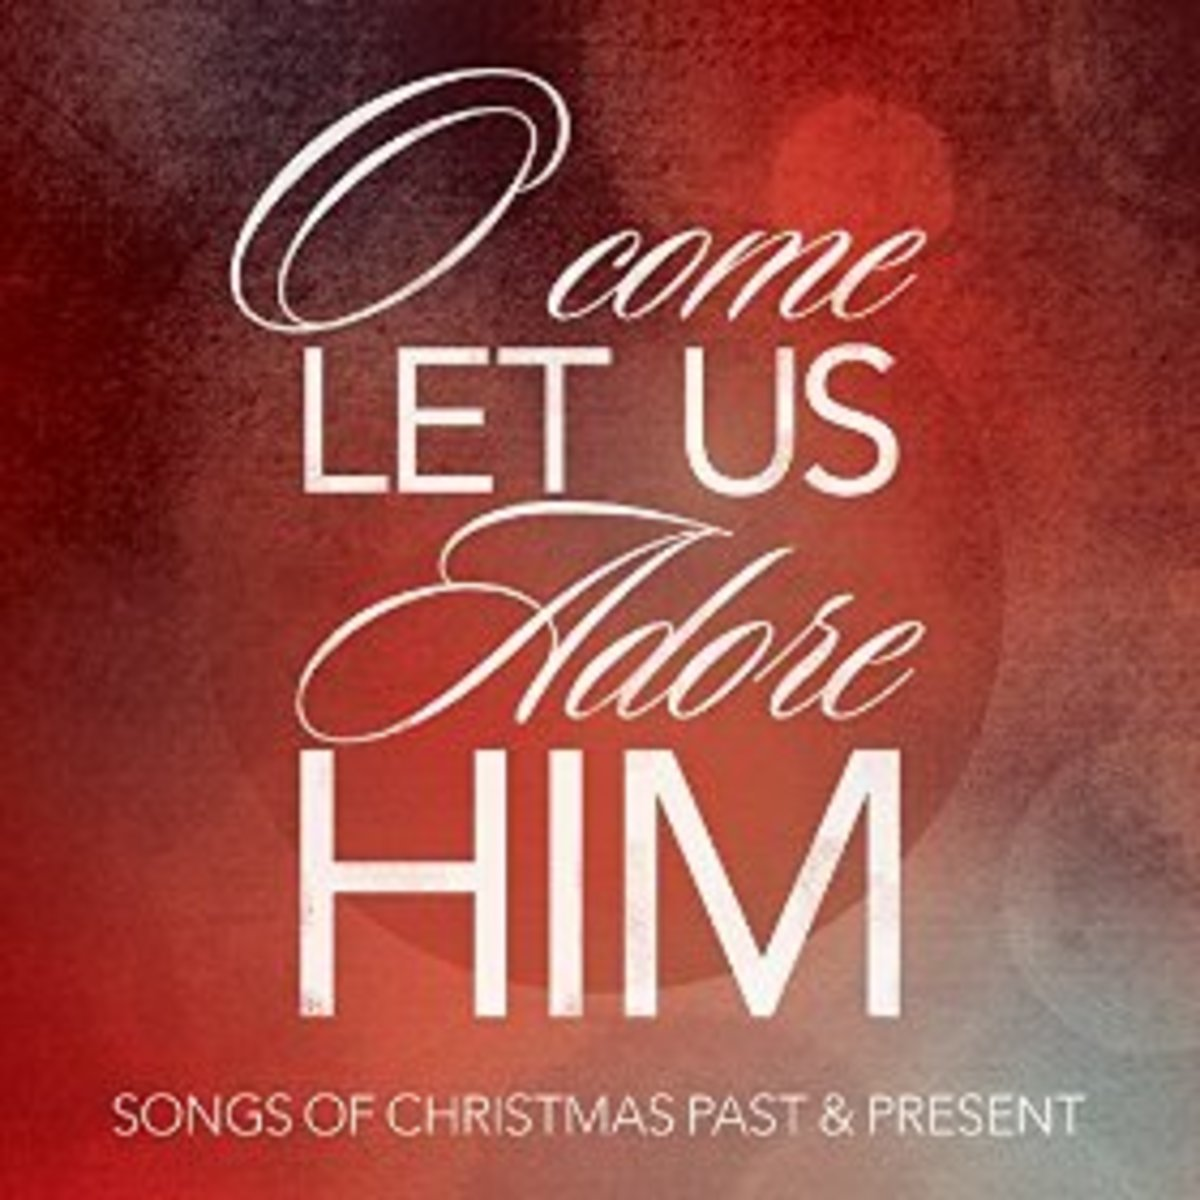 adore him is a christmas song by kari jobe a contemporary christian singer and songwriter from texas